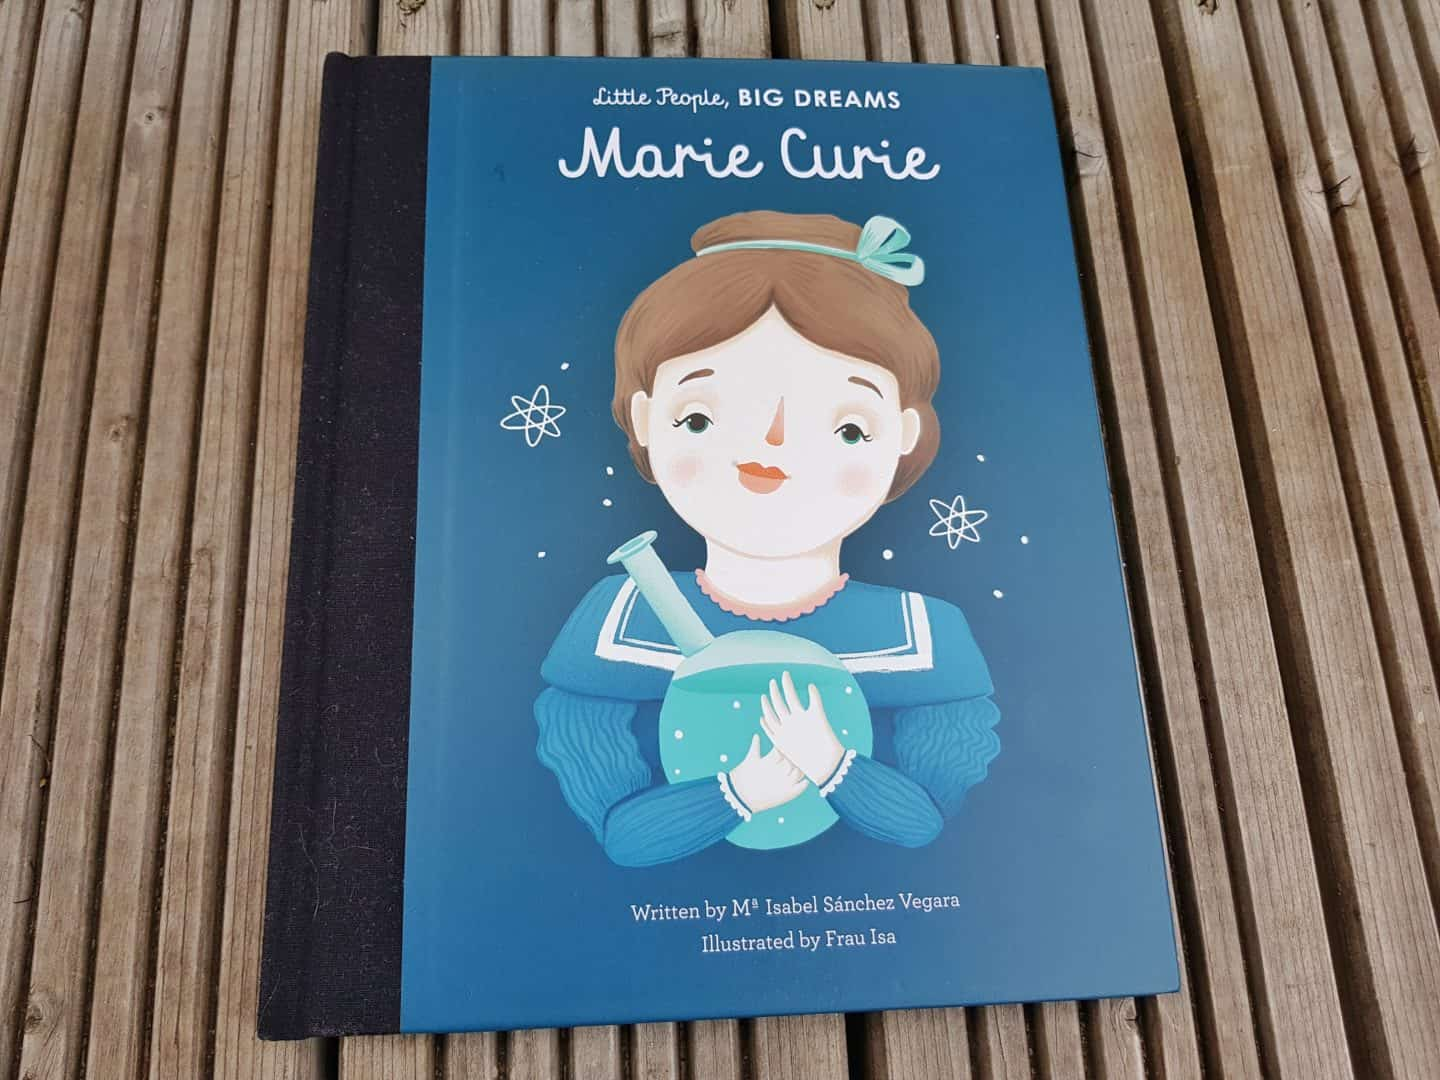 Children's book about Marie Curie